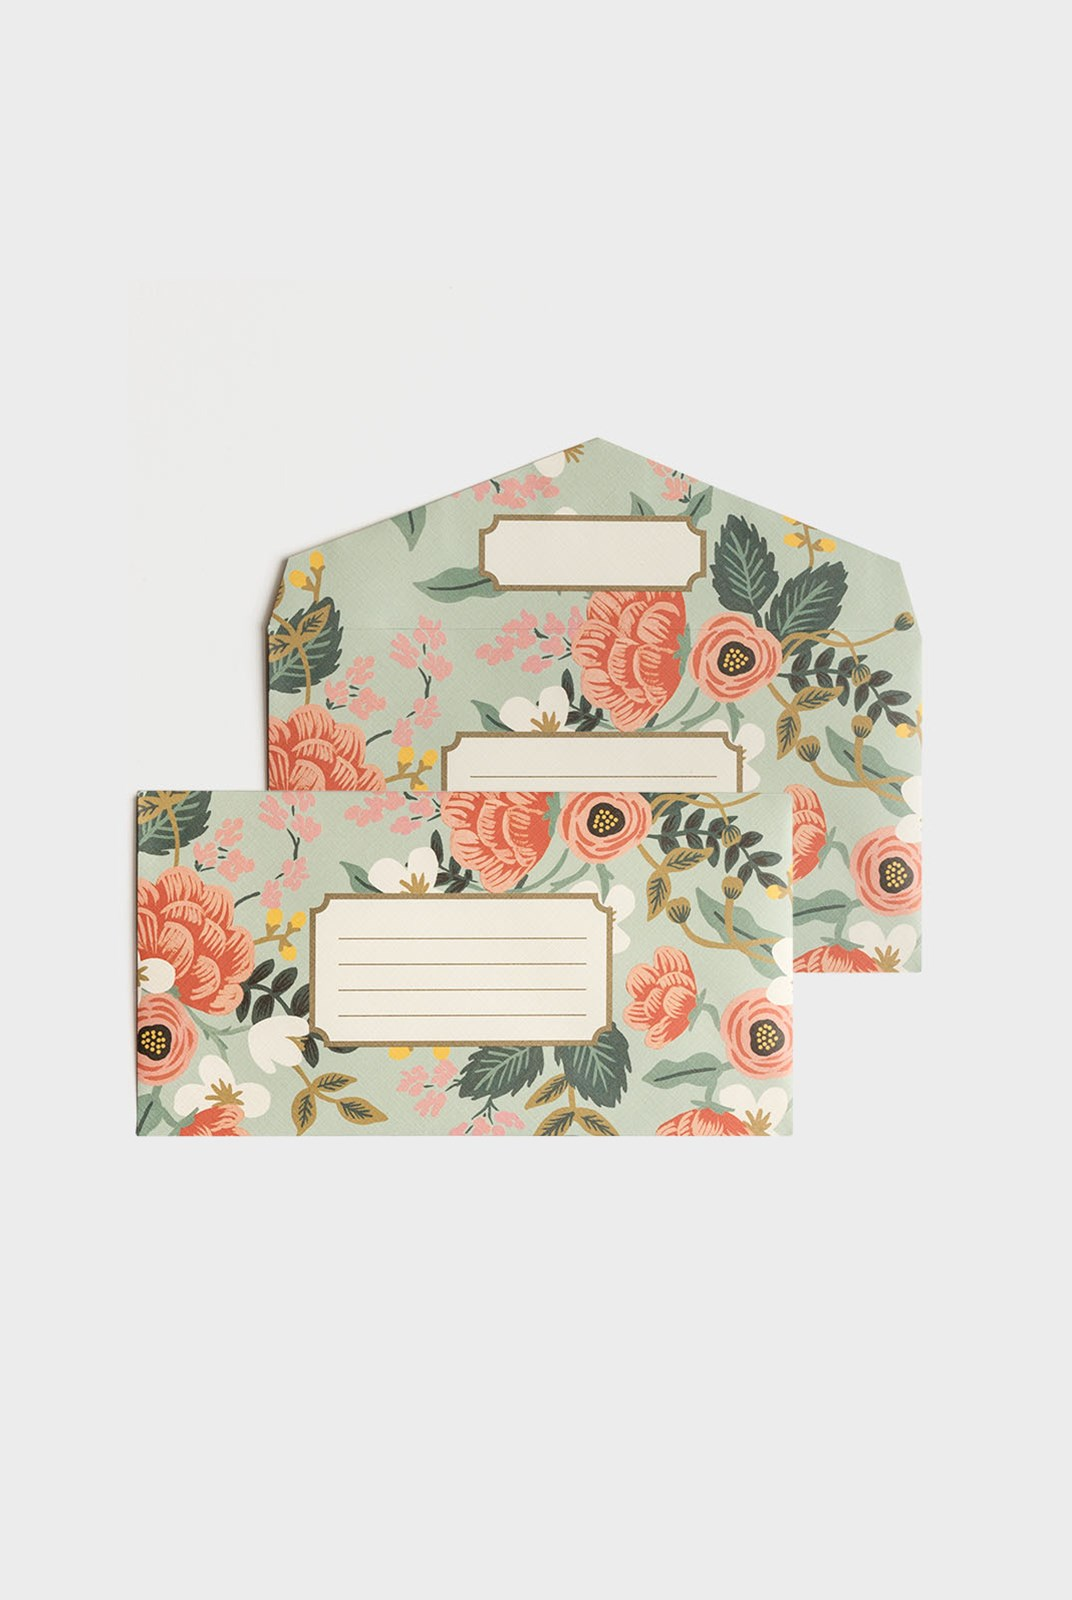 Rifle Paper Co - Envelopes - Boxed Set of 25 - Mint Birch Monarch